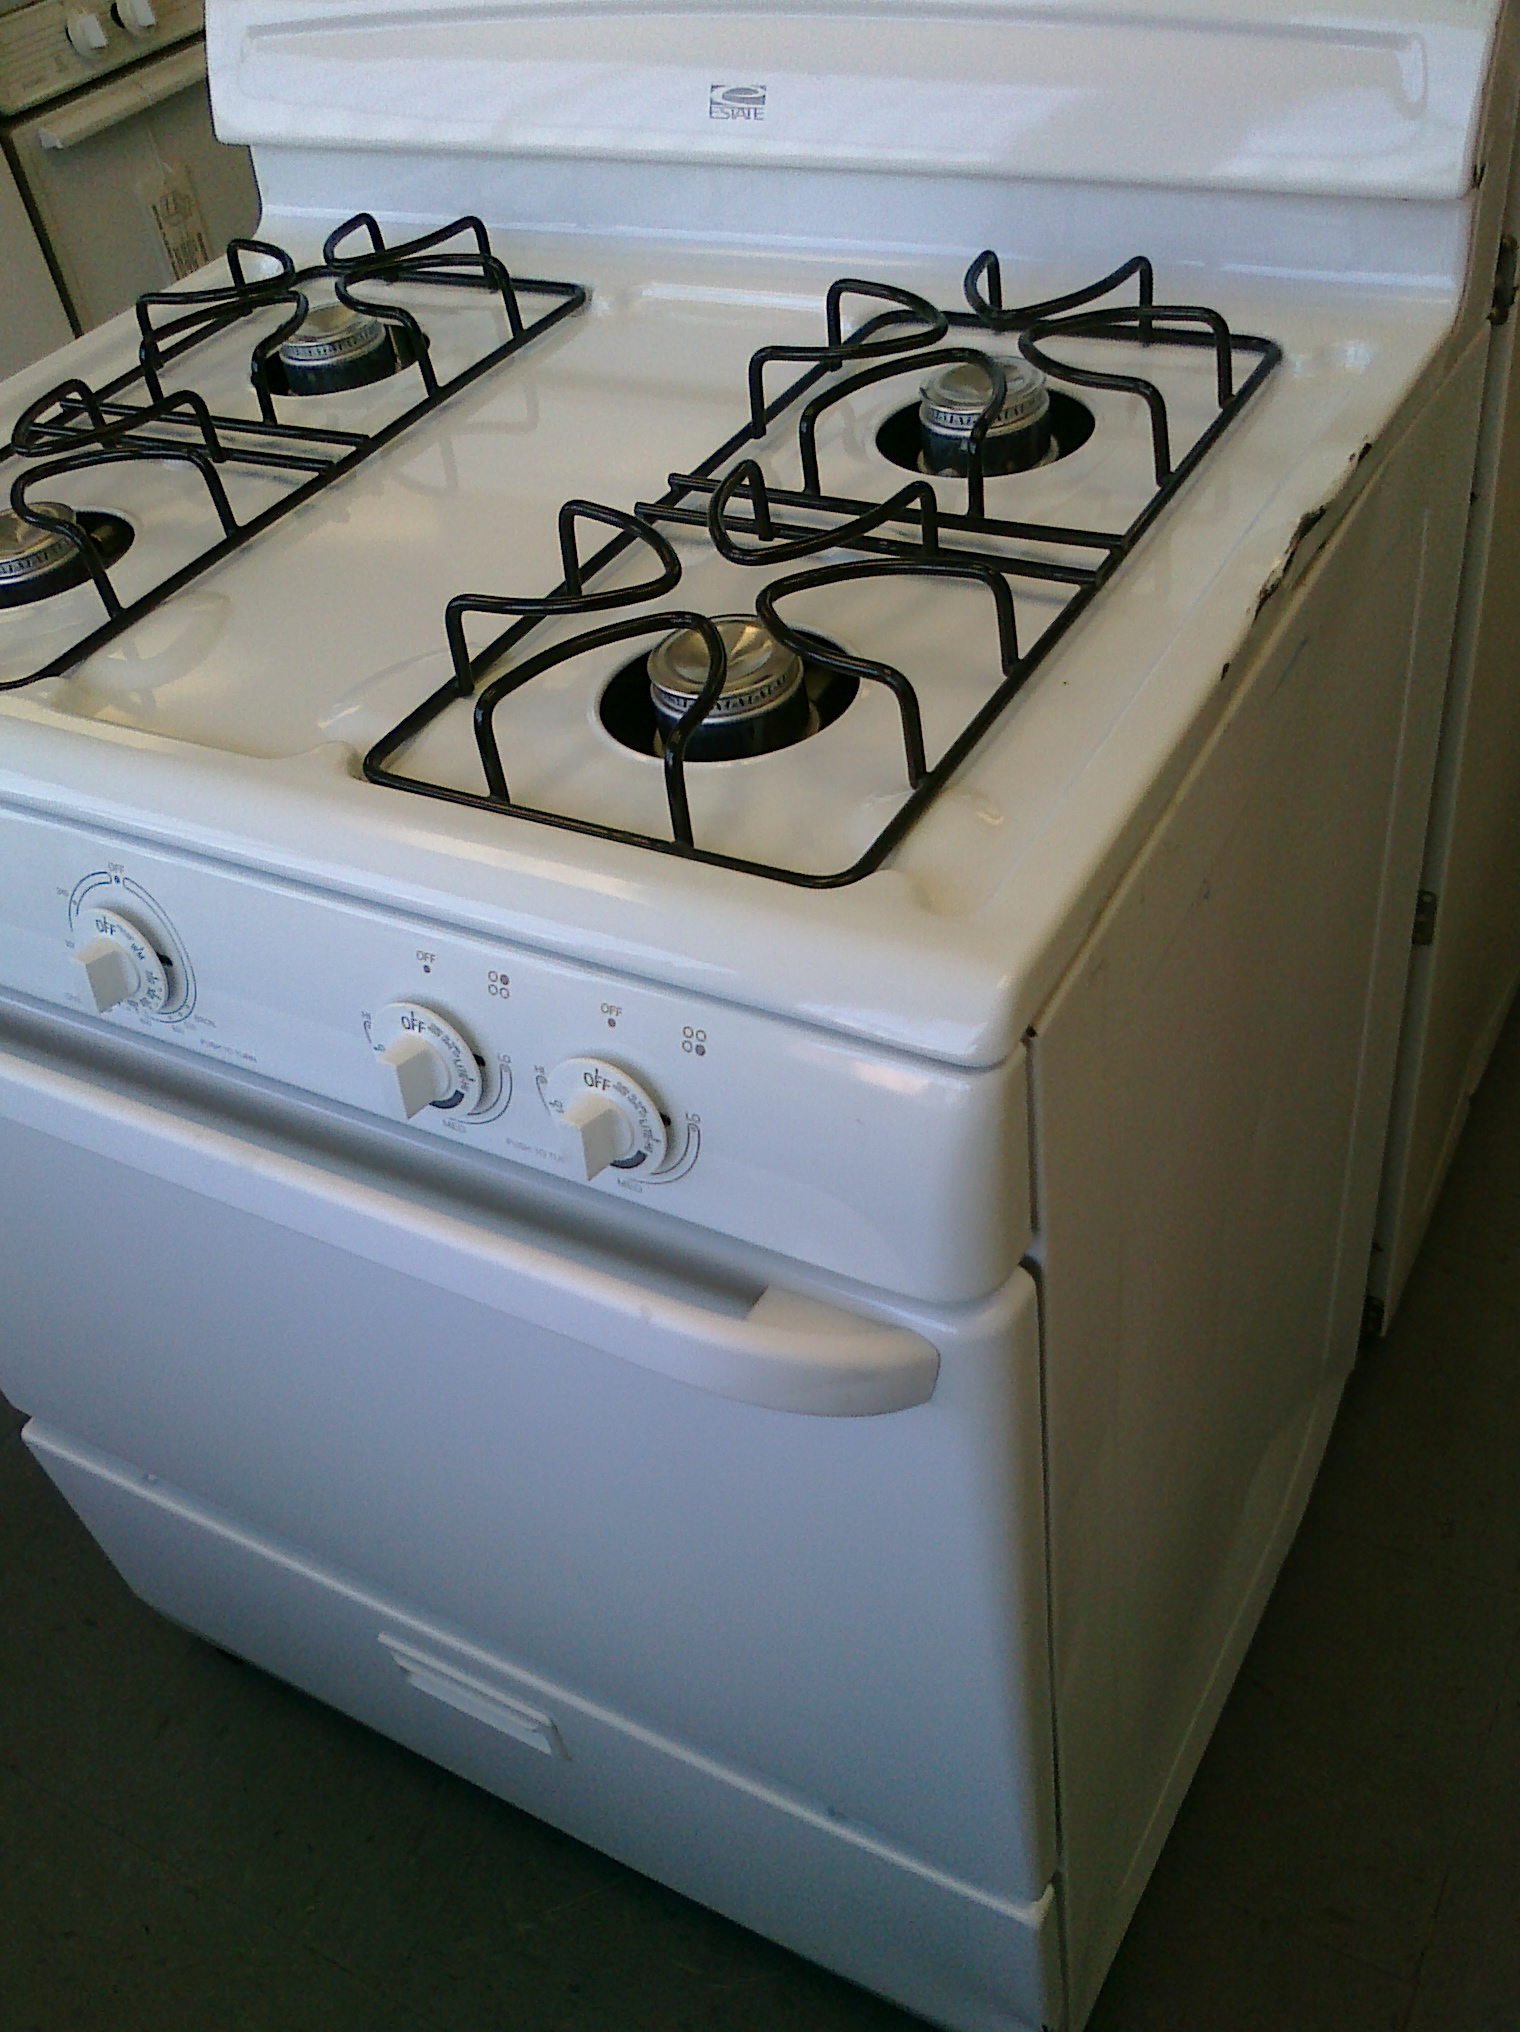 (8) Whirlpool Estate TGP300TQ 30″ Gas Range, White